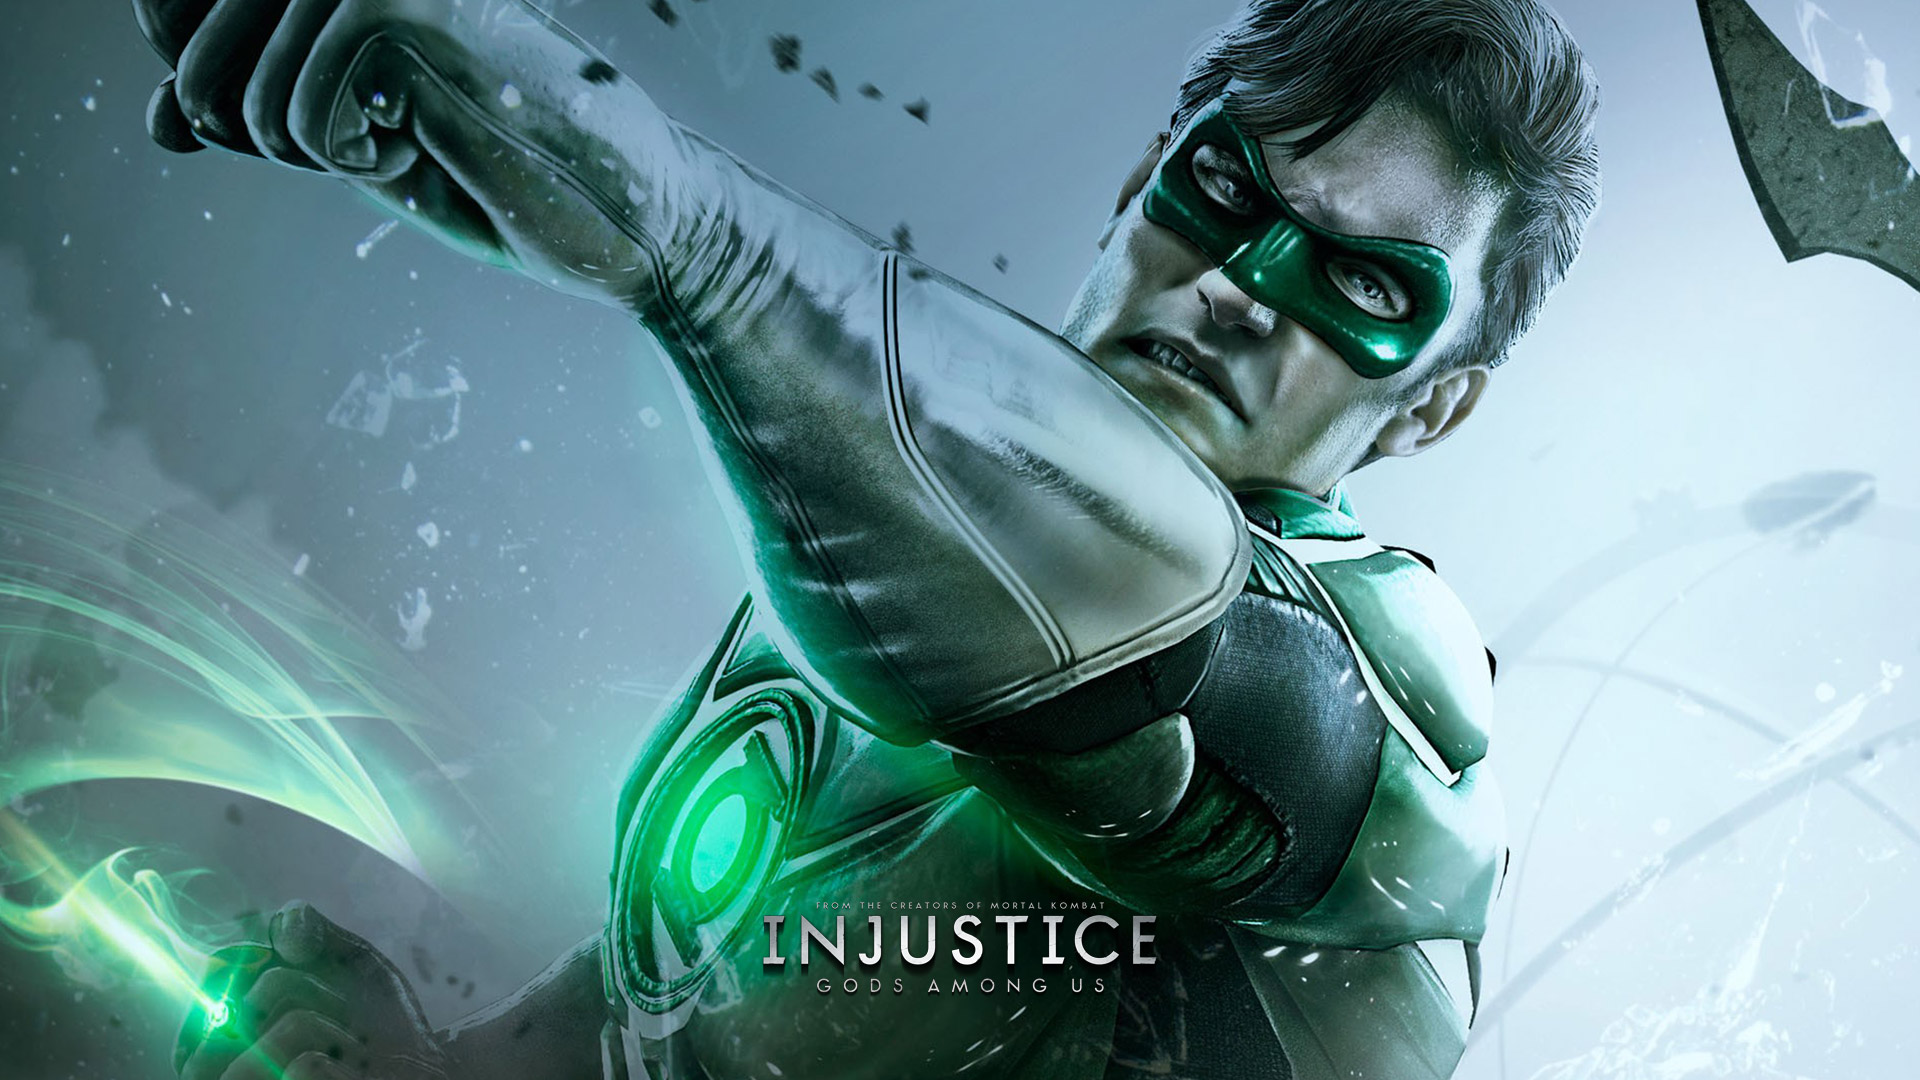 Free Injustice: Gods Among Us Wallpaper in 1920x1080